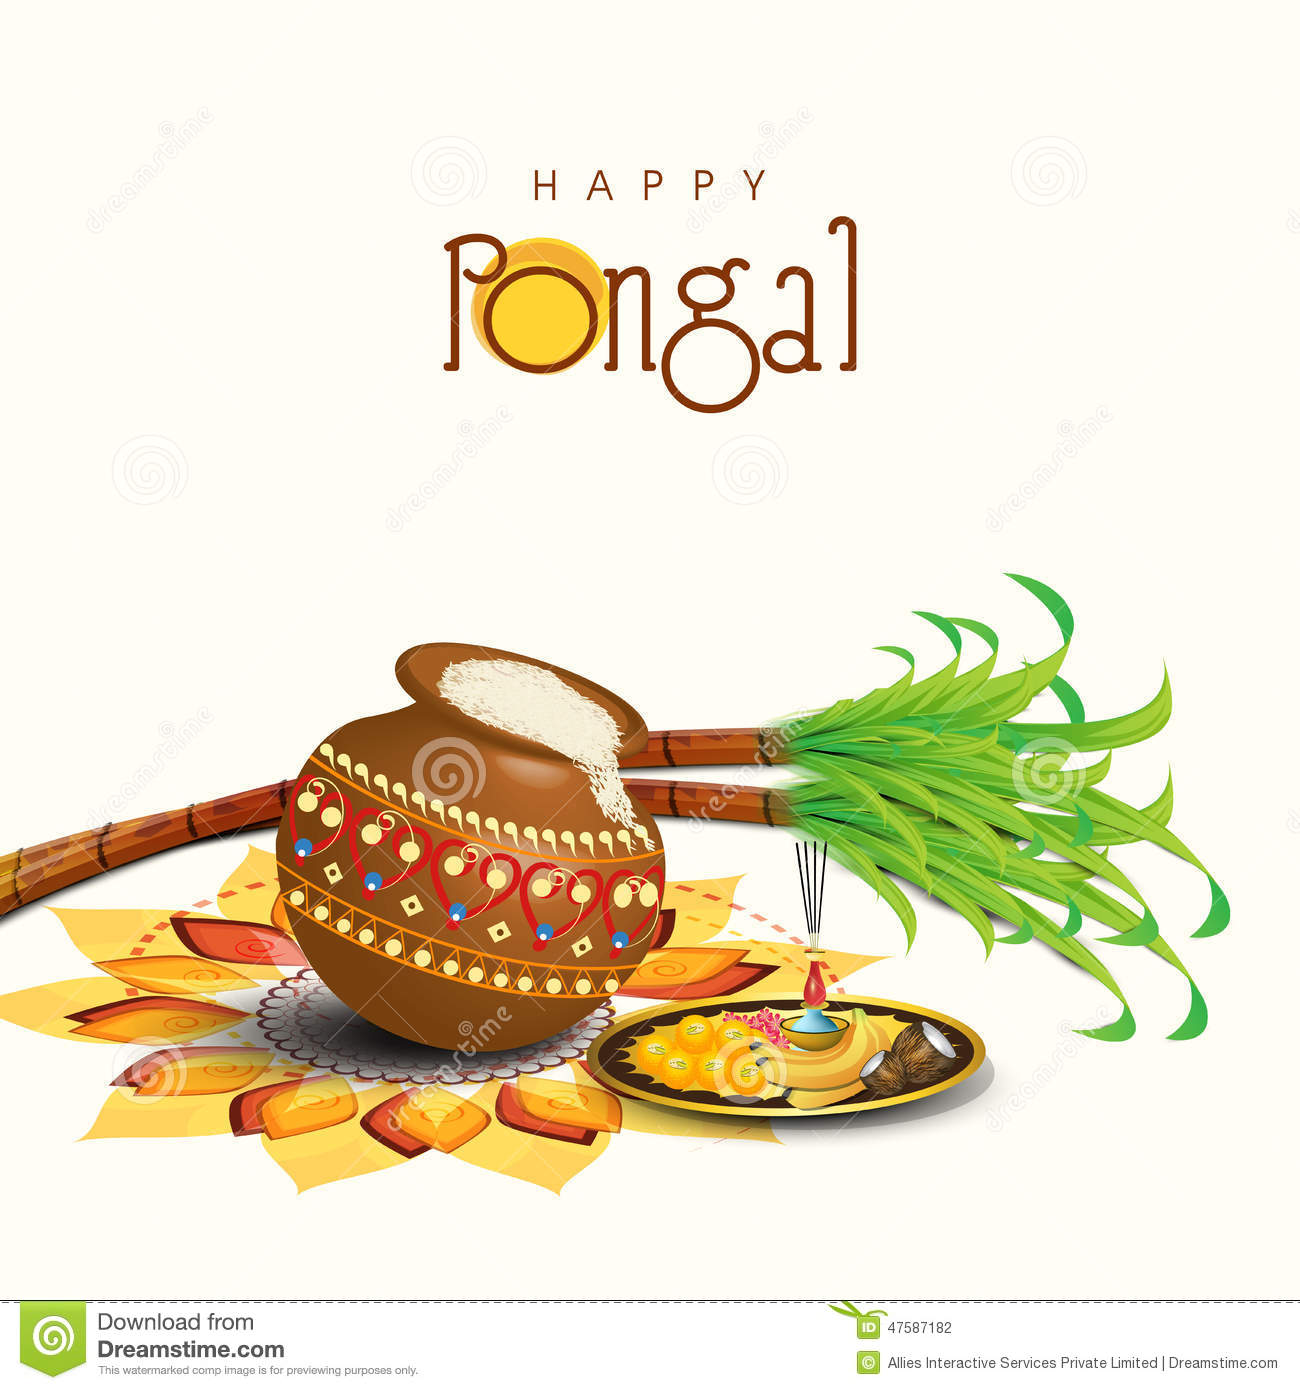 Pongal festival clipart image black and white library Pongal clipart 14 » Clipart Station image black and white library